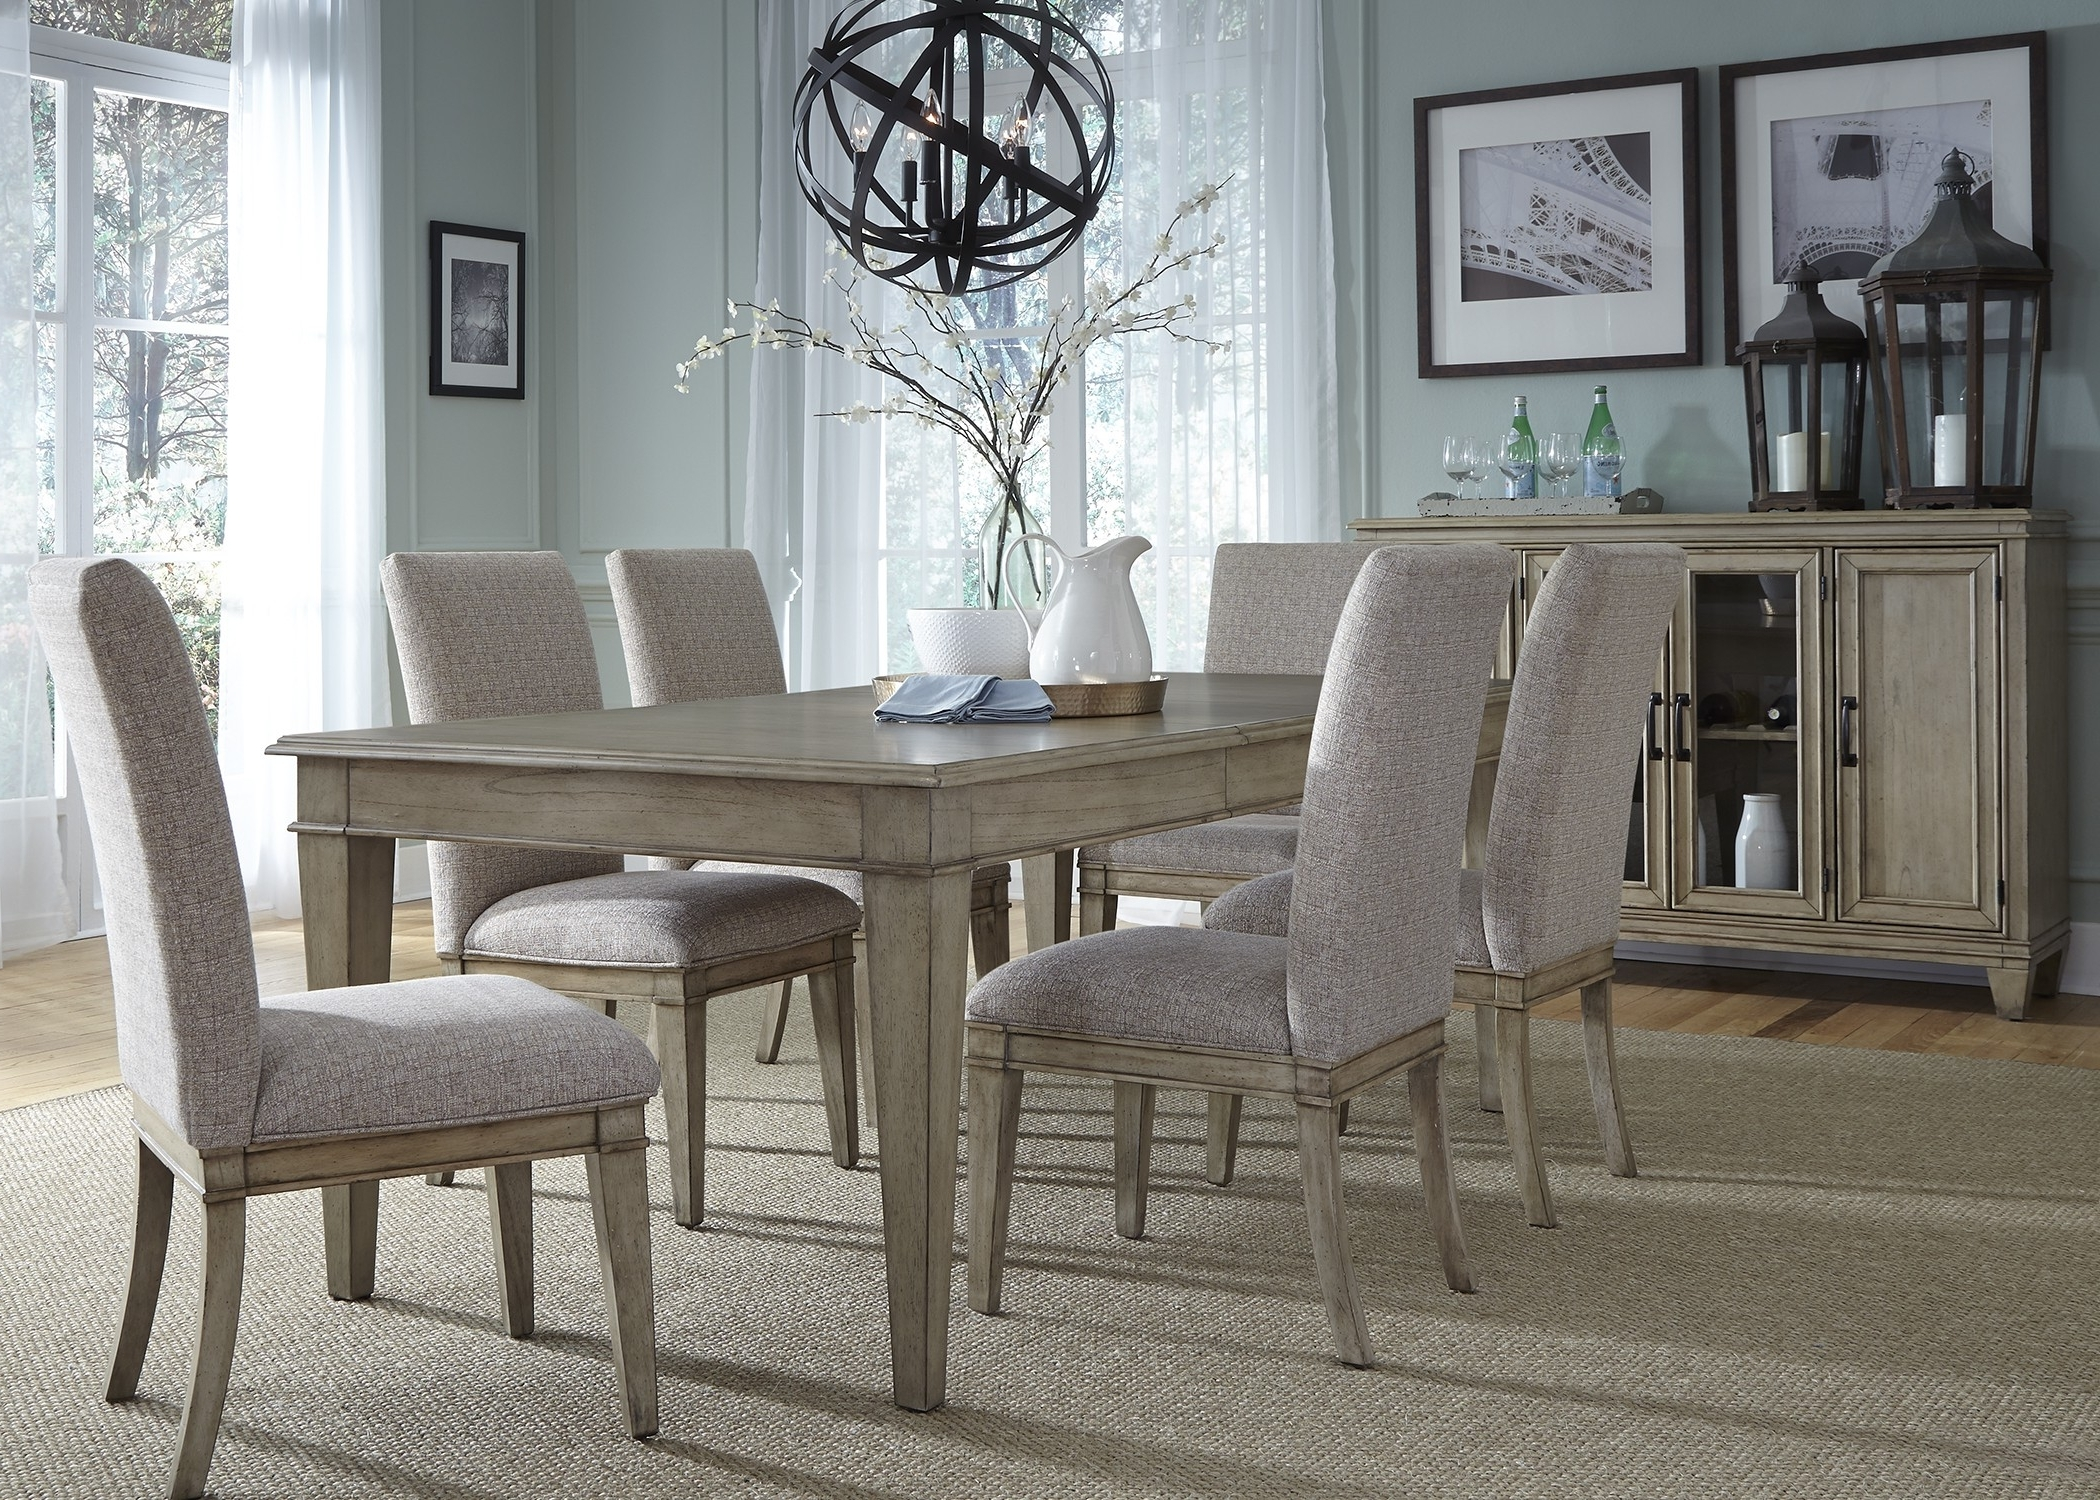 18. Grayton Grove Extendable Dining Room Set From Liberty Coleman Pertaining To Preferred Jaxon Grey 7 Piece Rectangle Extension Dining Sets With Wood Chairs (Gallery 15 of 25)